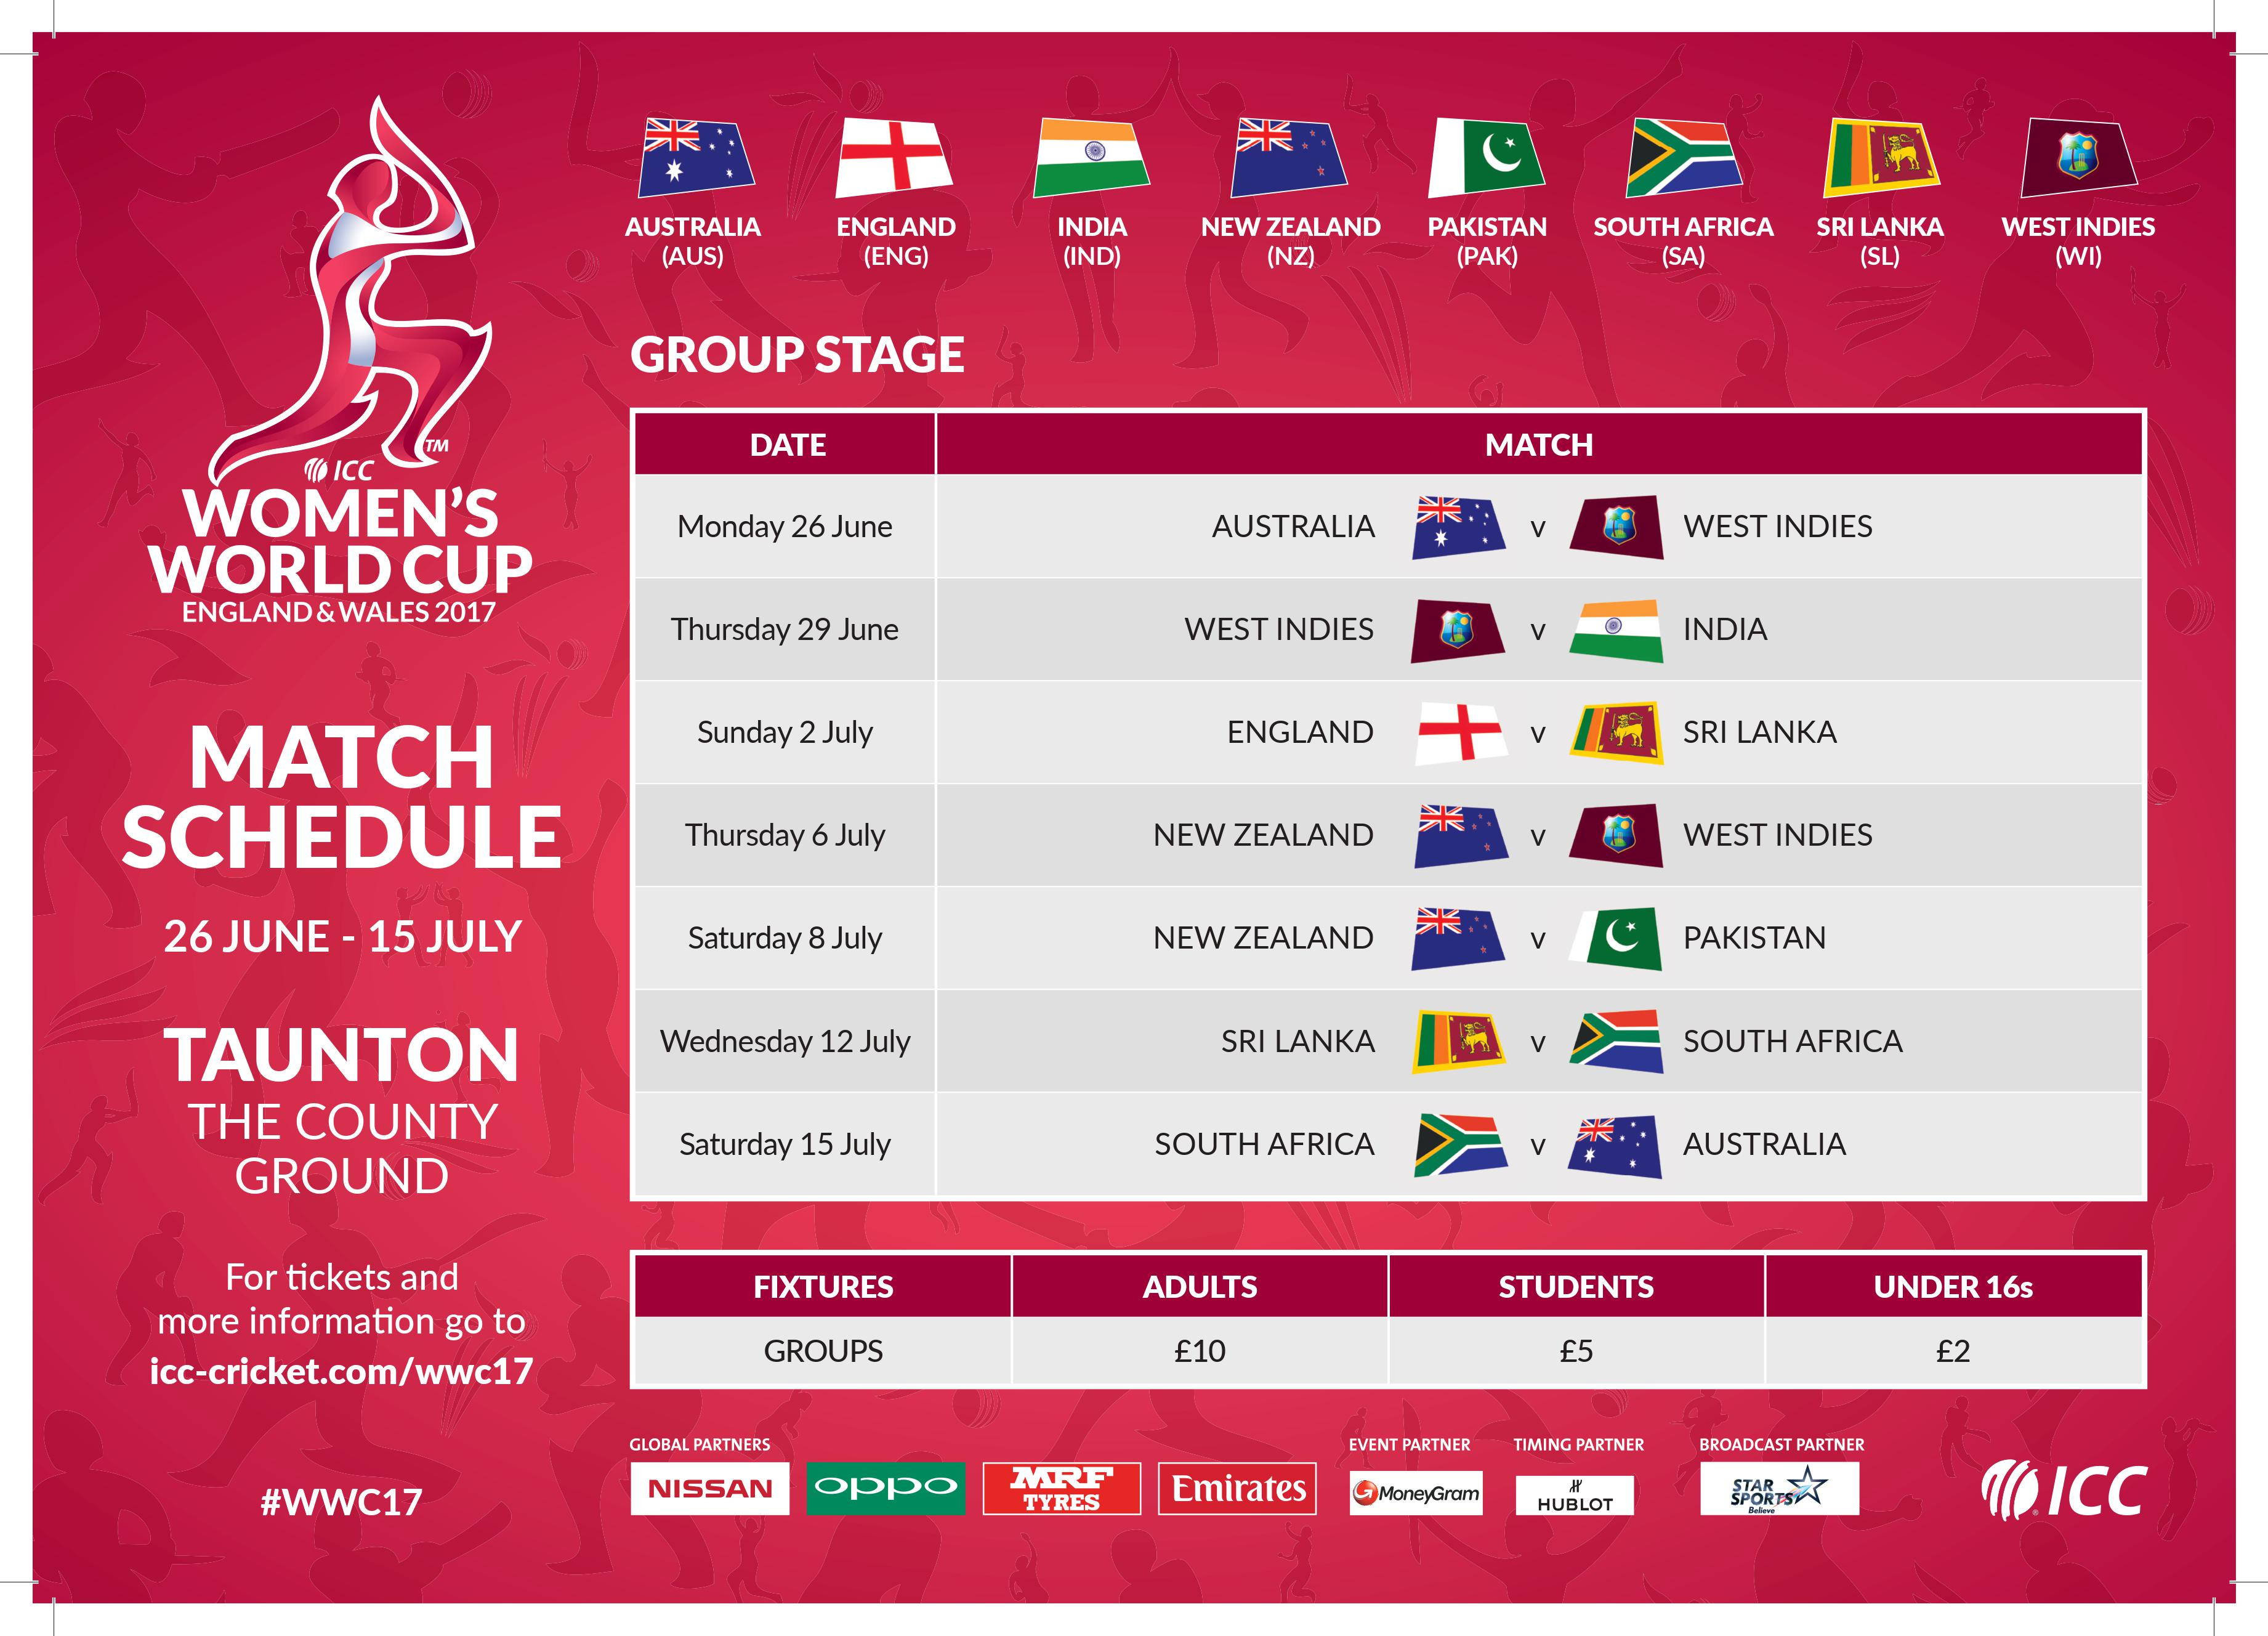 County Ground Taunton Icc Women S World Cup Match Day Suite Image Of Fixtures European Qualifiers